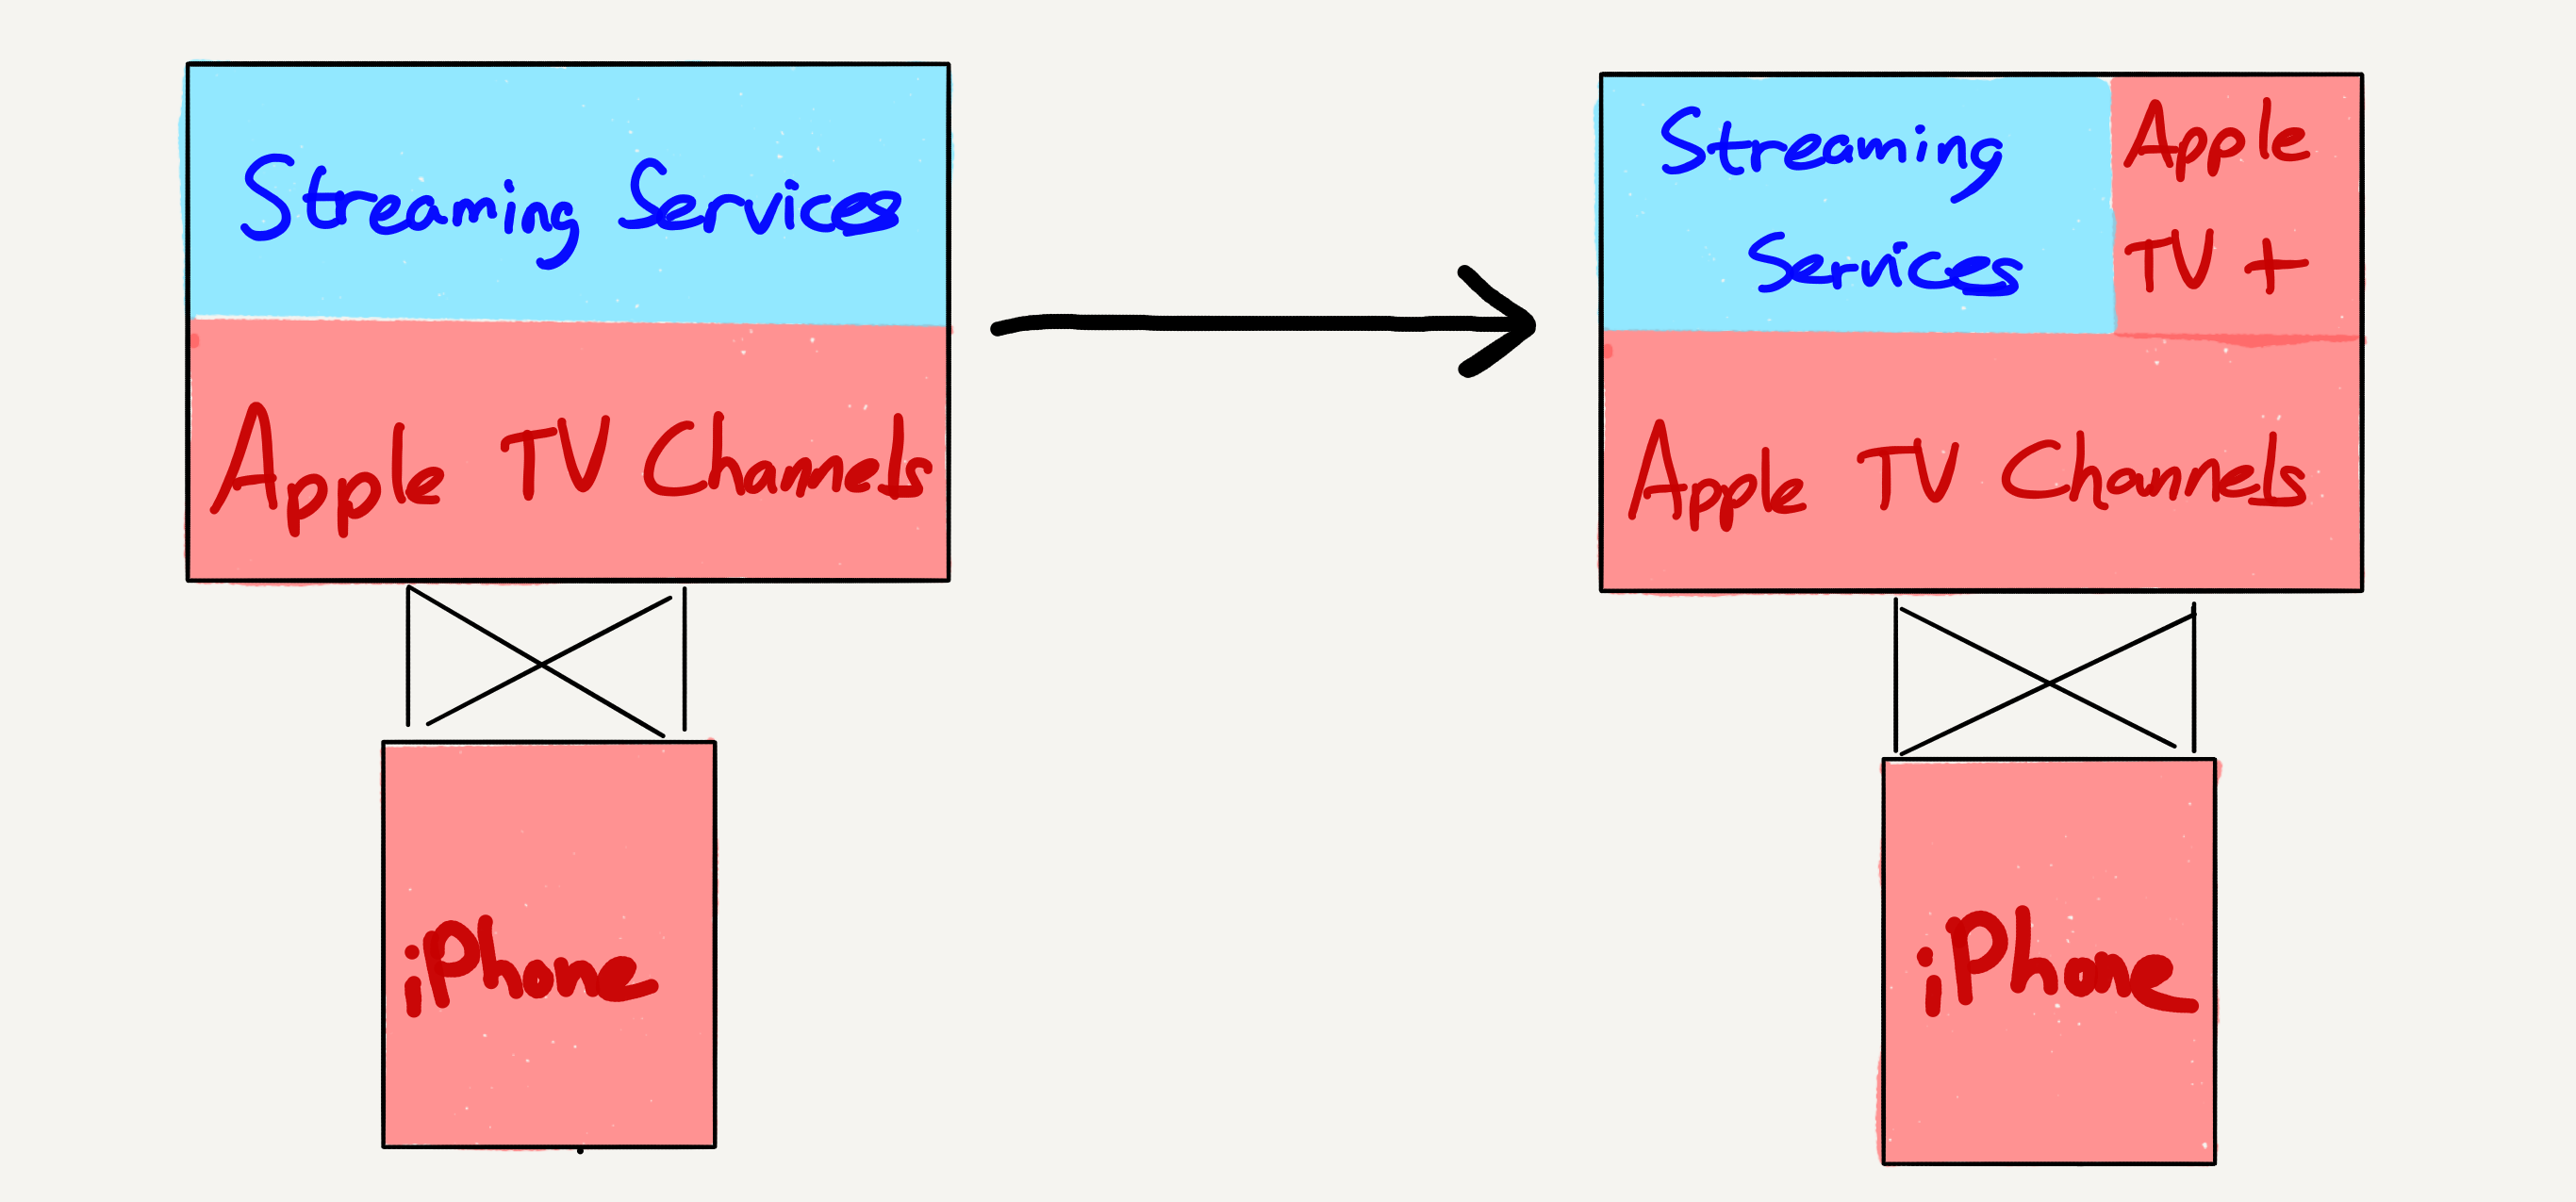 Apple's Services Event – Stratechery by Ben Thompson